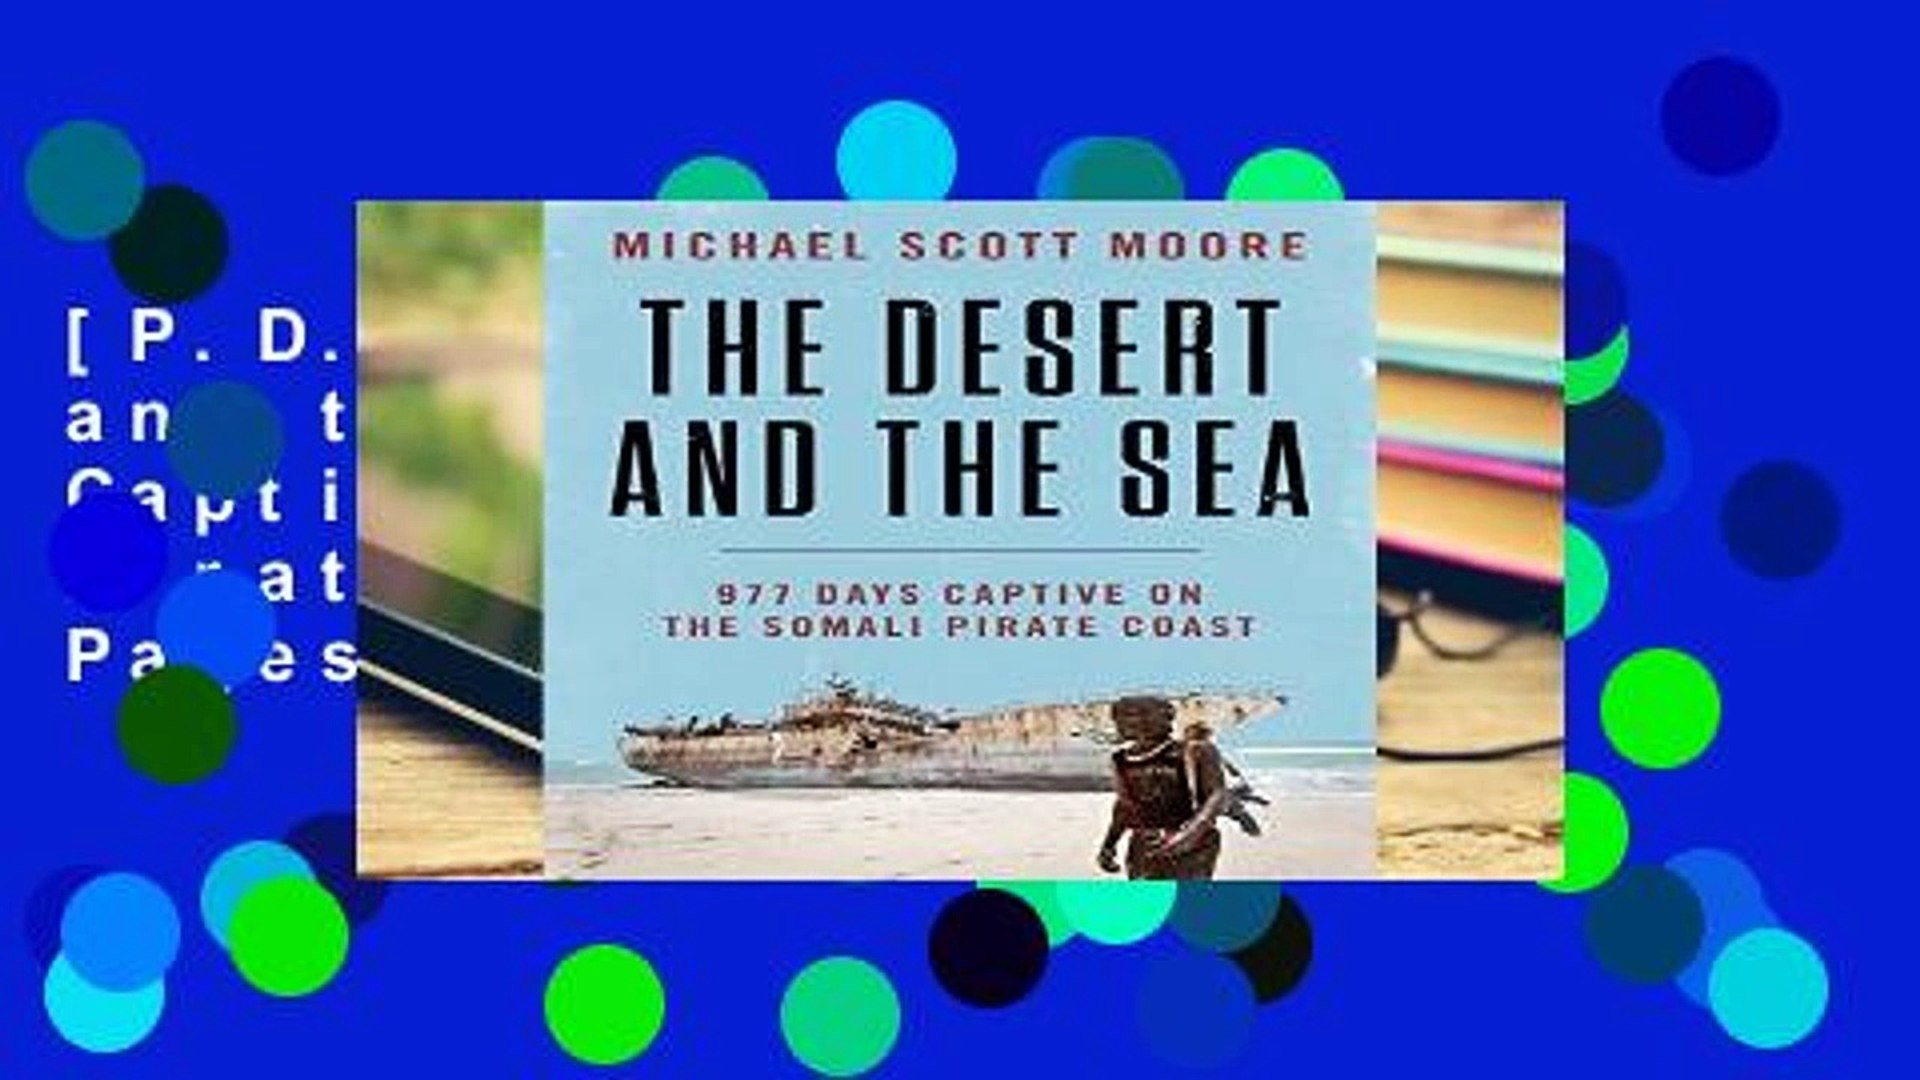 [P.D.F] The Desert and the Sea: 977 Days Captive on the Somali Pirate Coast *Full Pages*